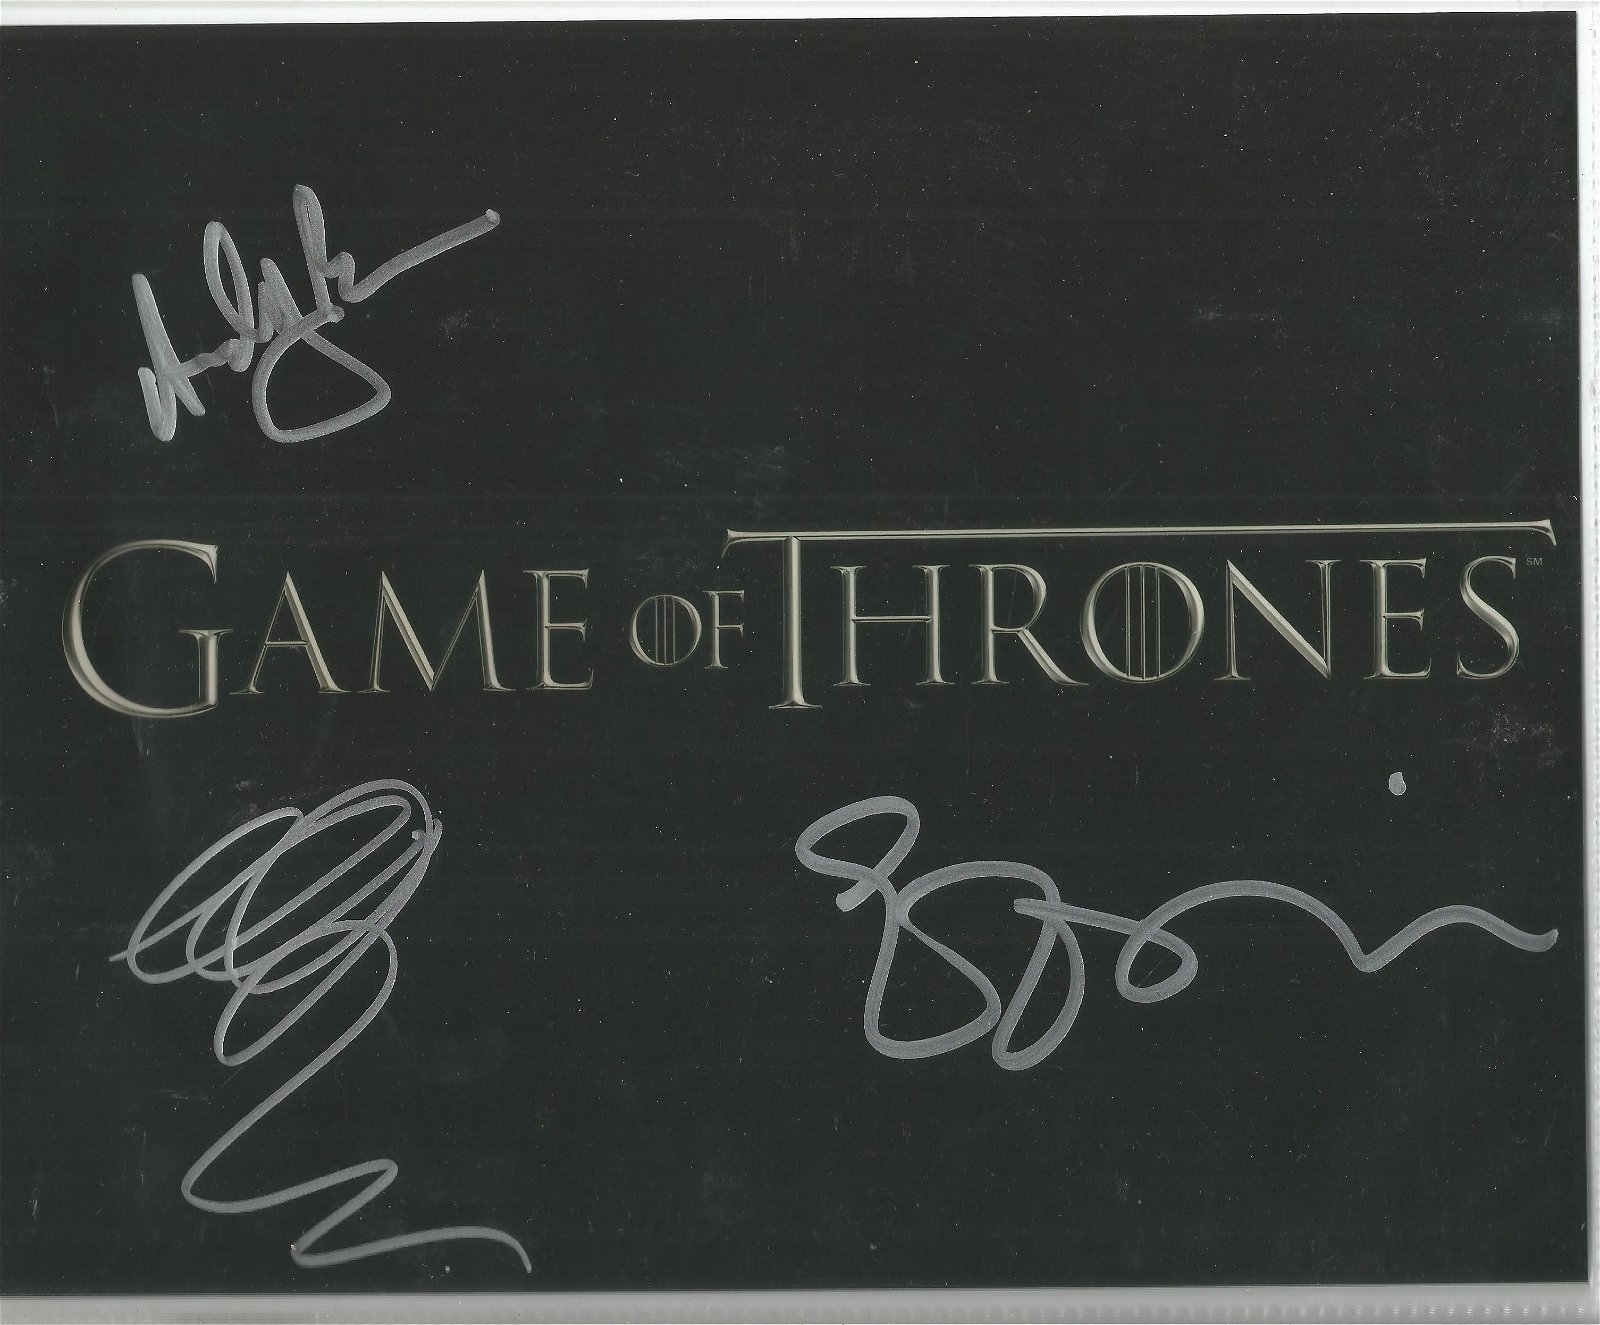 Game of Thrones 8x10 photo signed by cast members